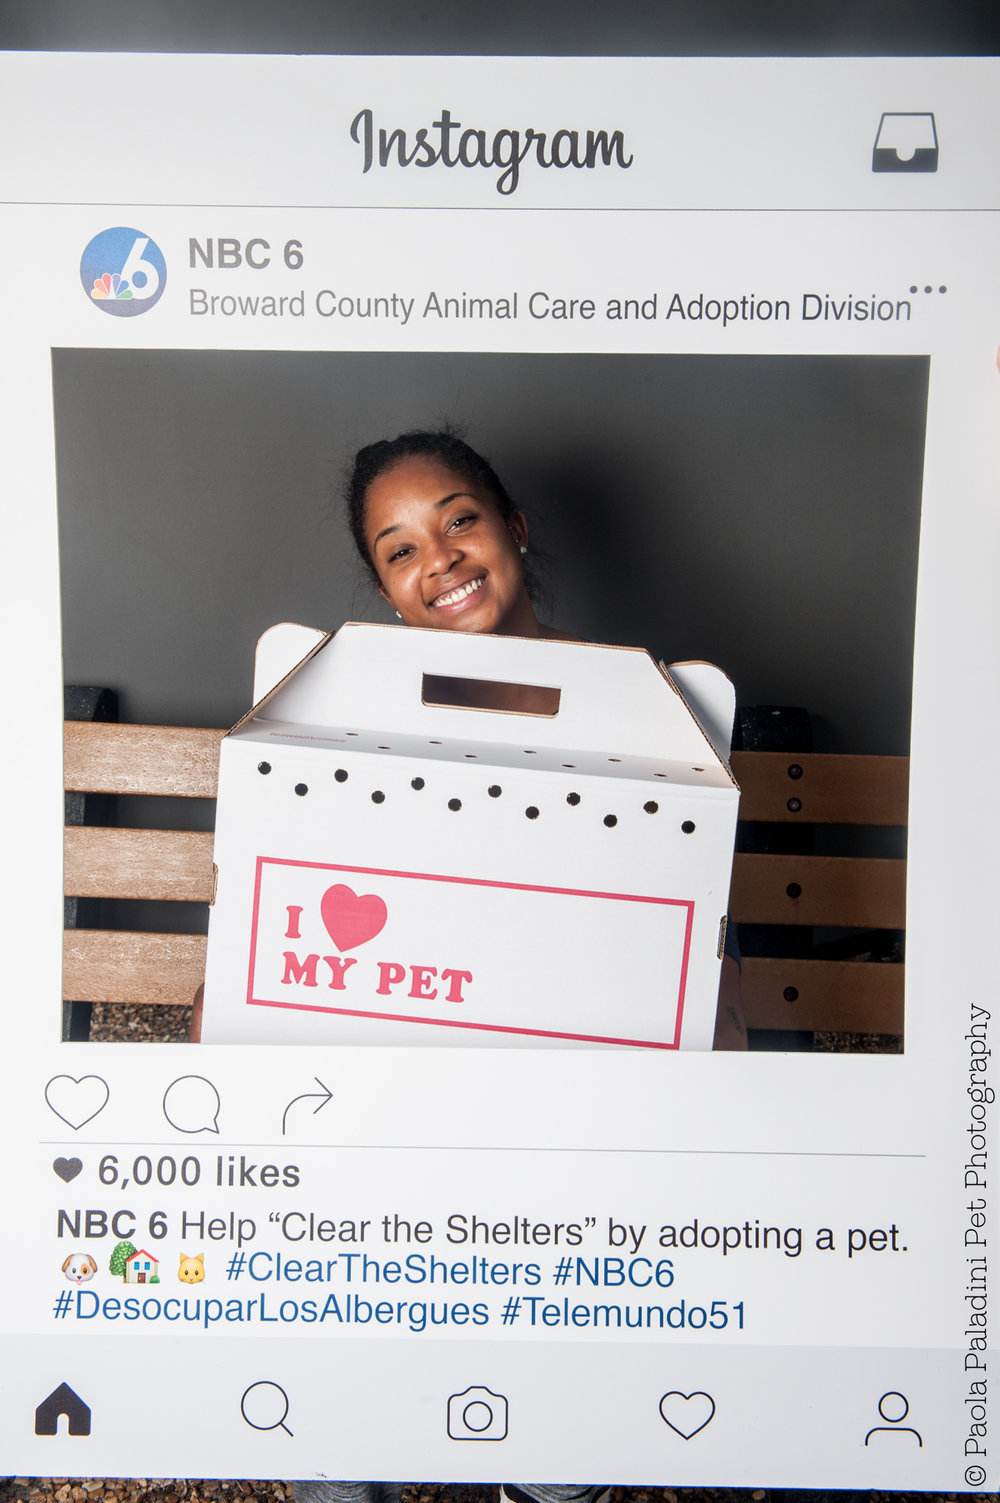 20160723-cleartheshelters-26.jpg